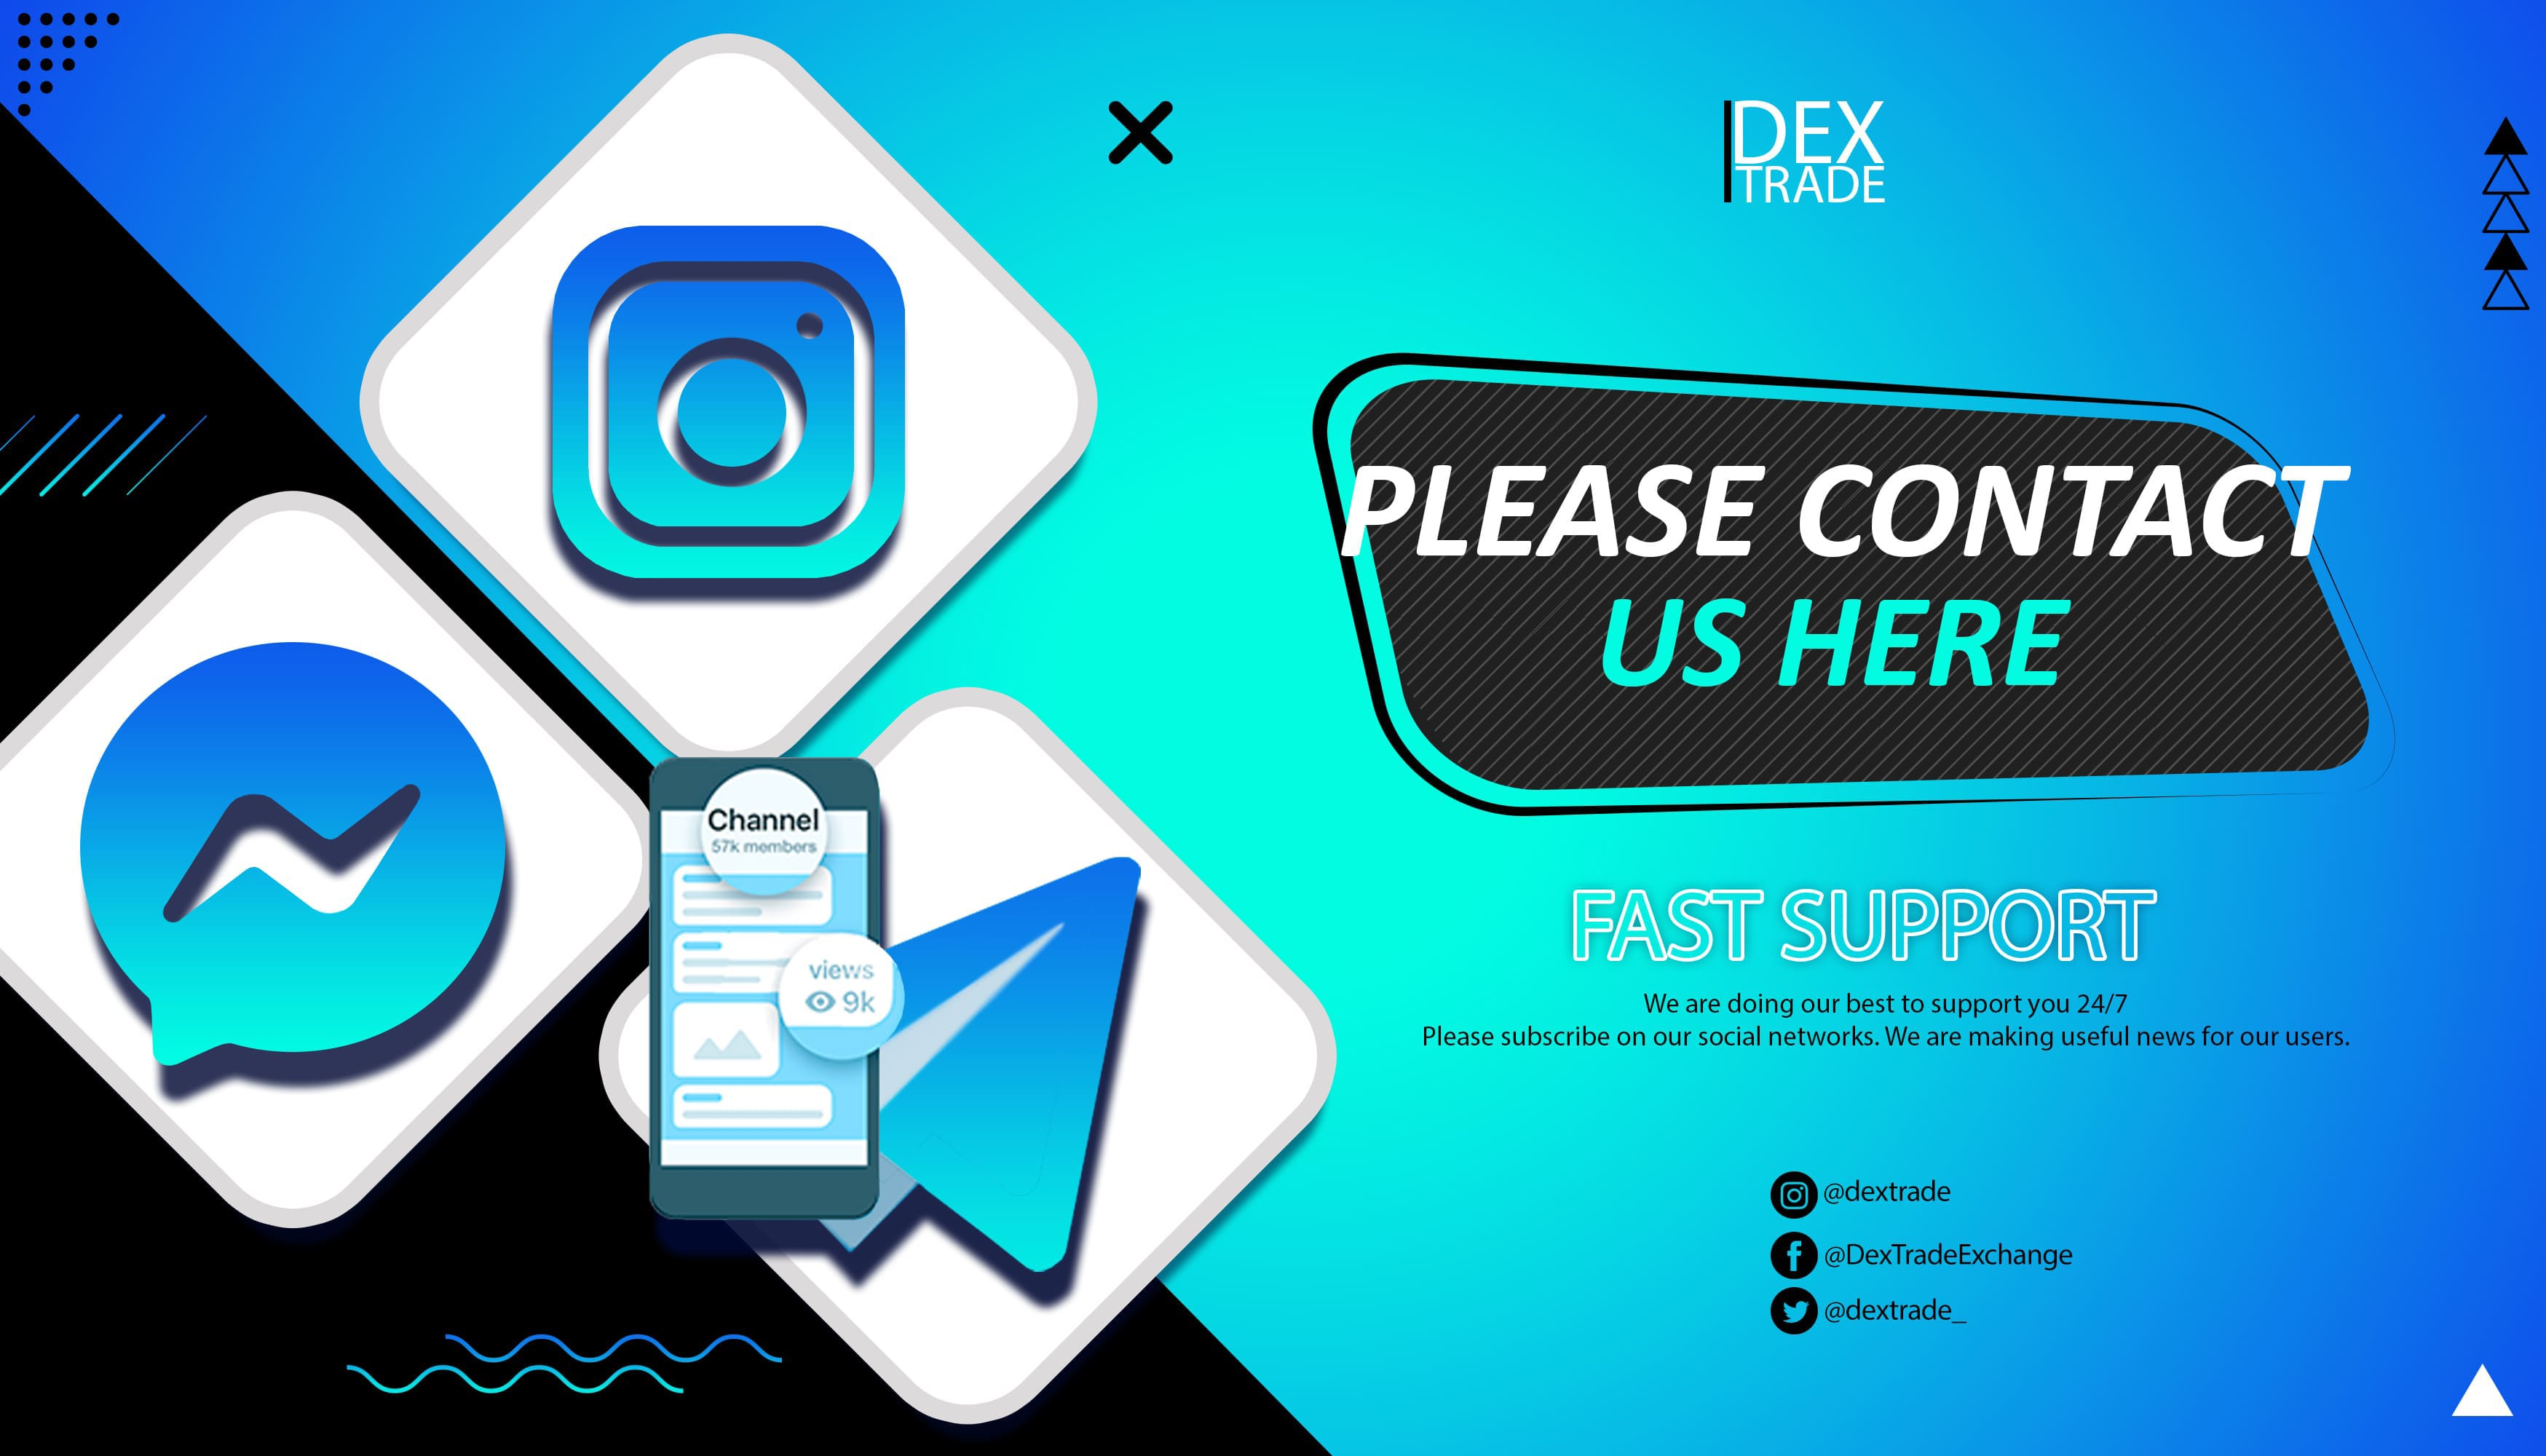 Follow our social networks